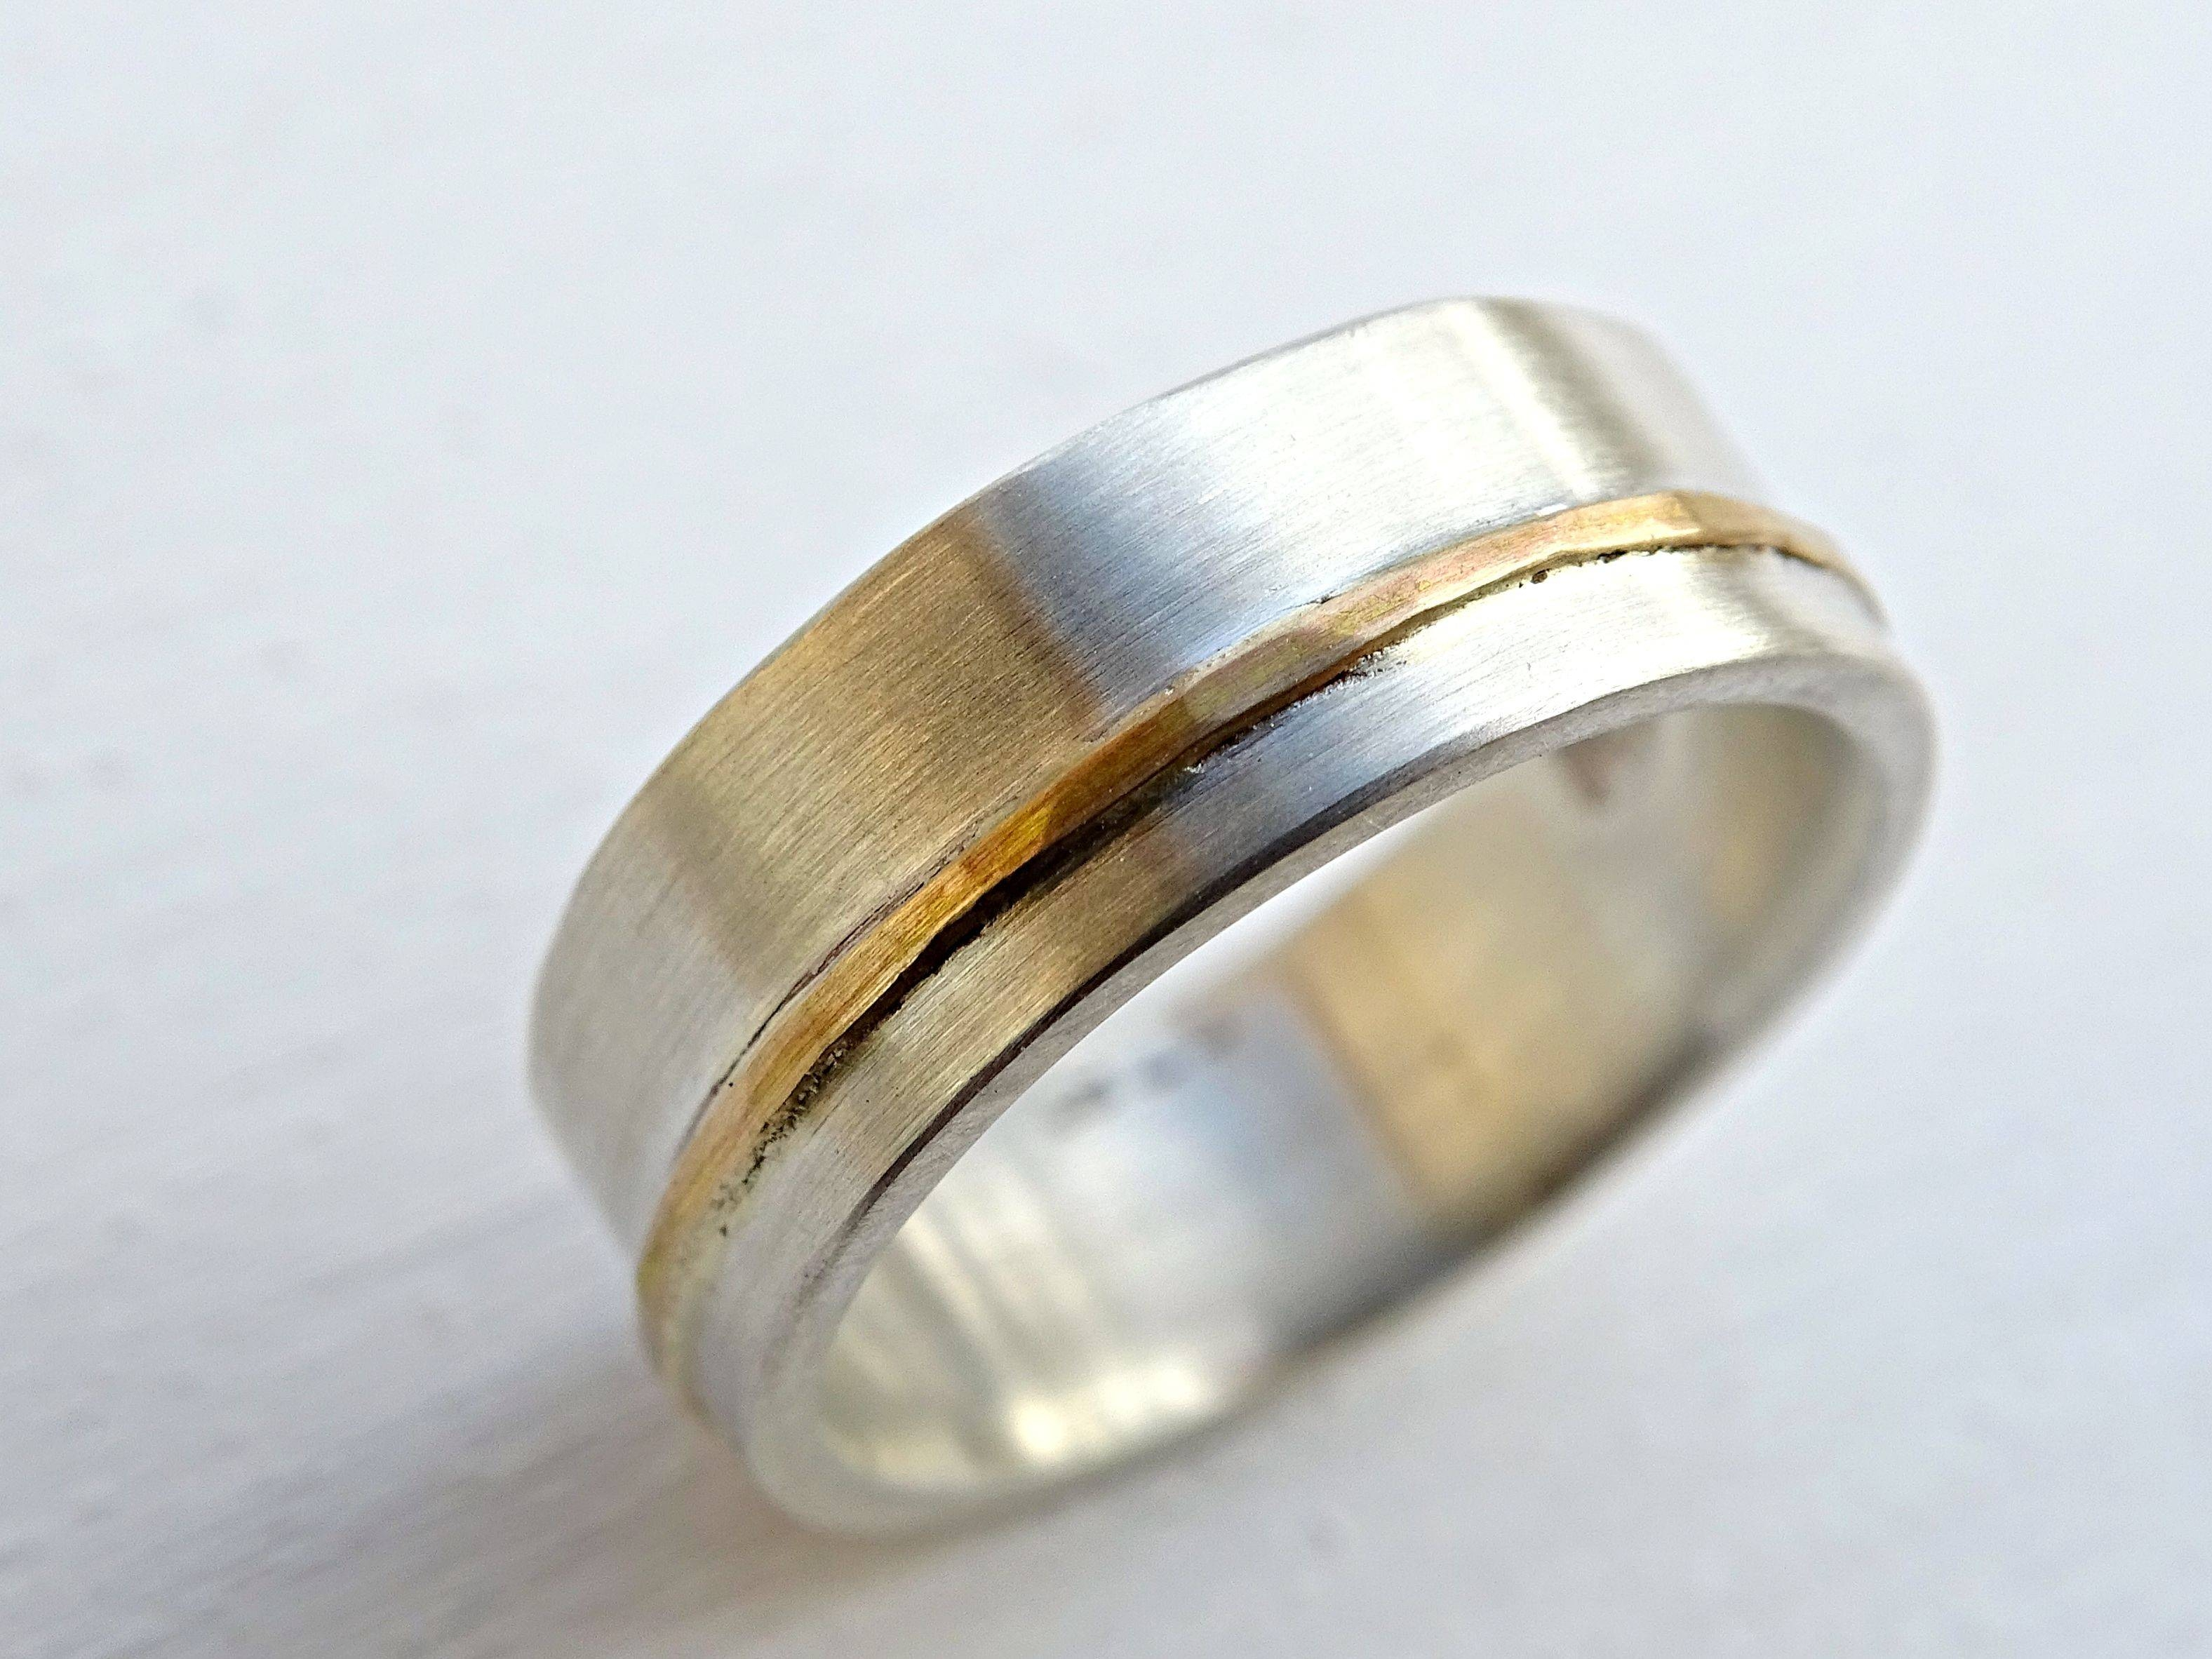 Buy A Hand Crafted Viking Wedding Ring, Mens Wedding Band Gold Throughout Silver And Gold Mens Wedding Bands (View 5 of 15)